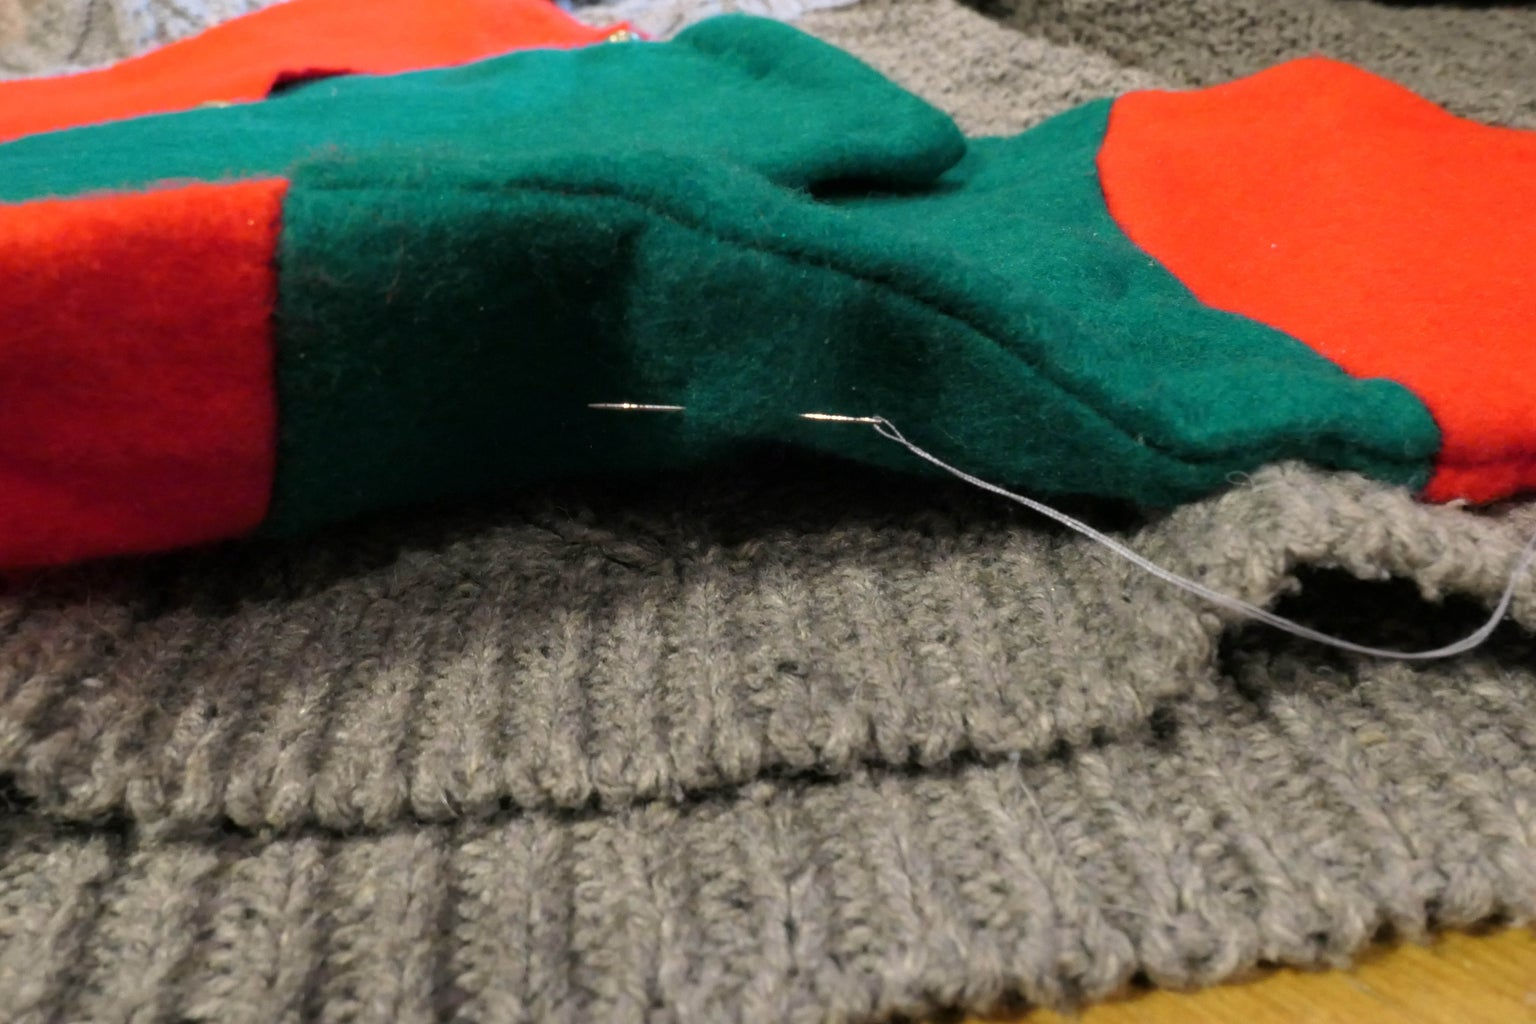 Sew on the Stocking